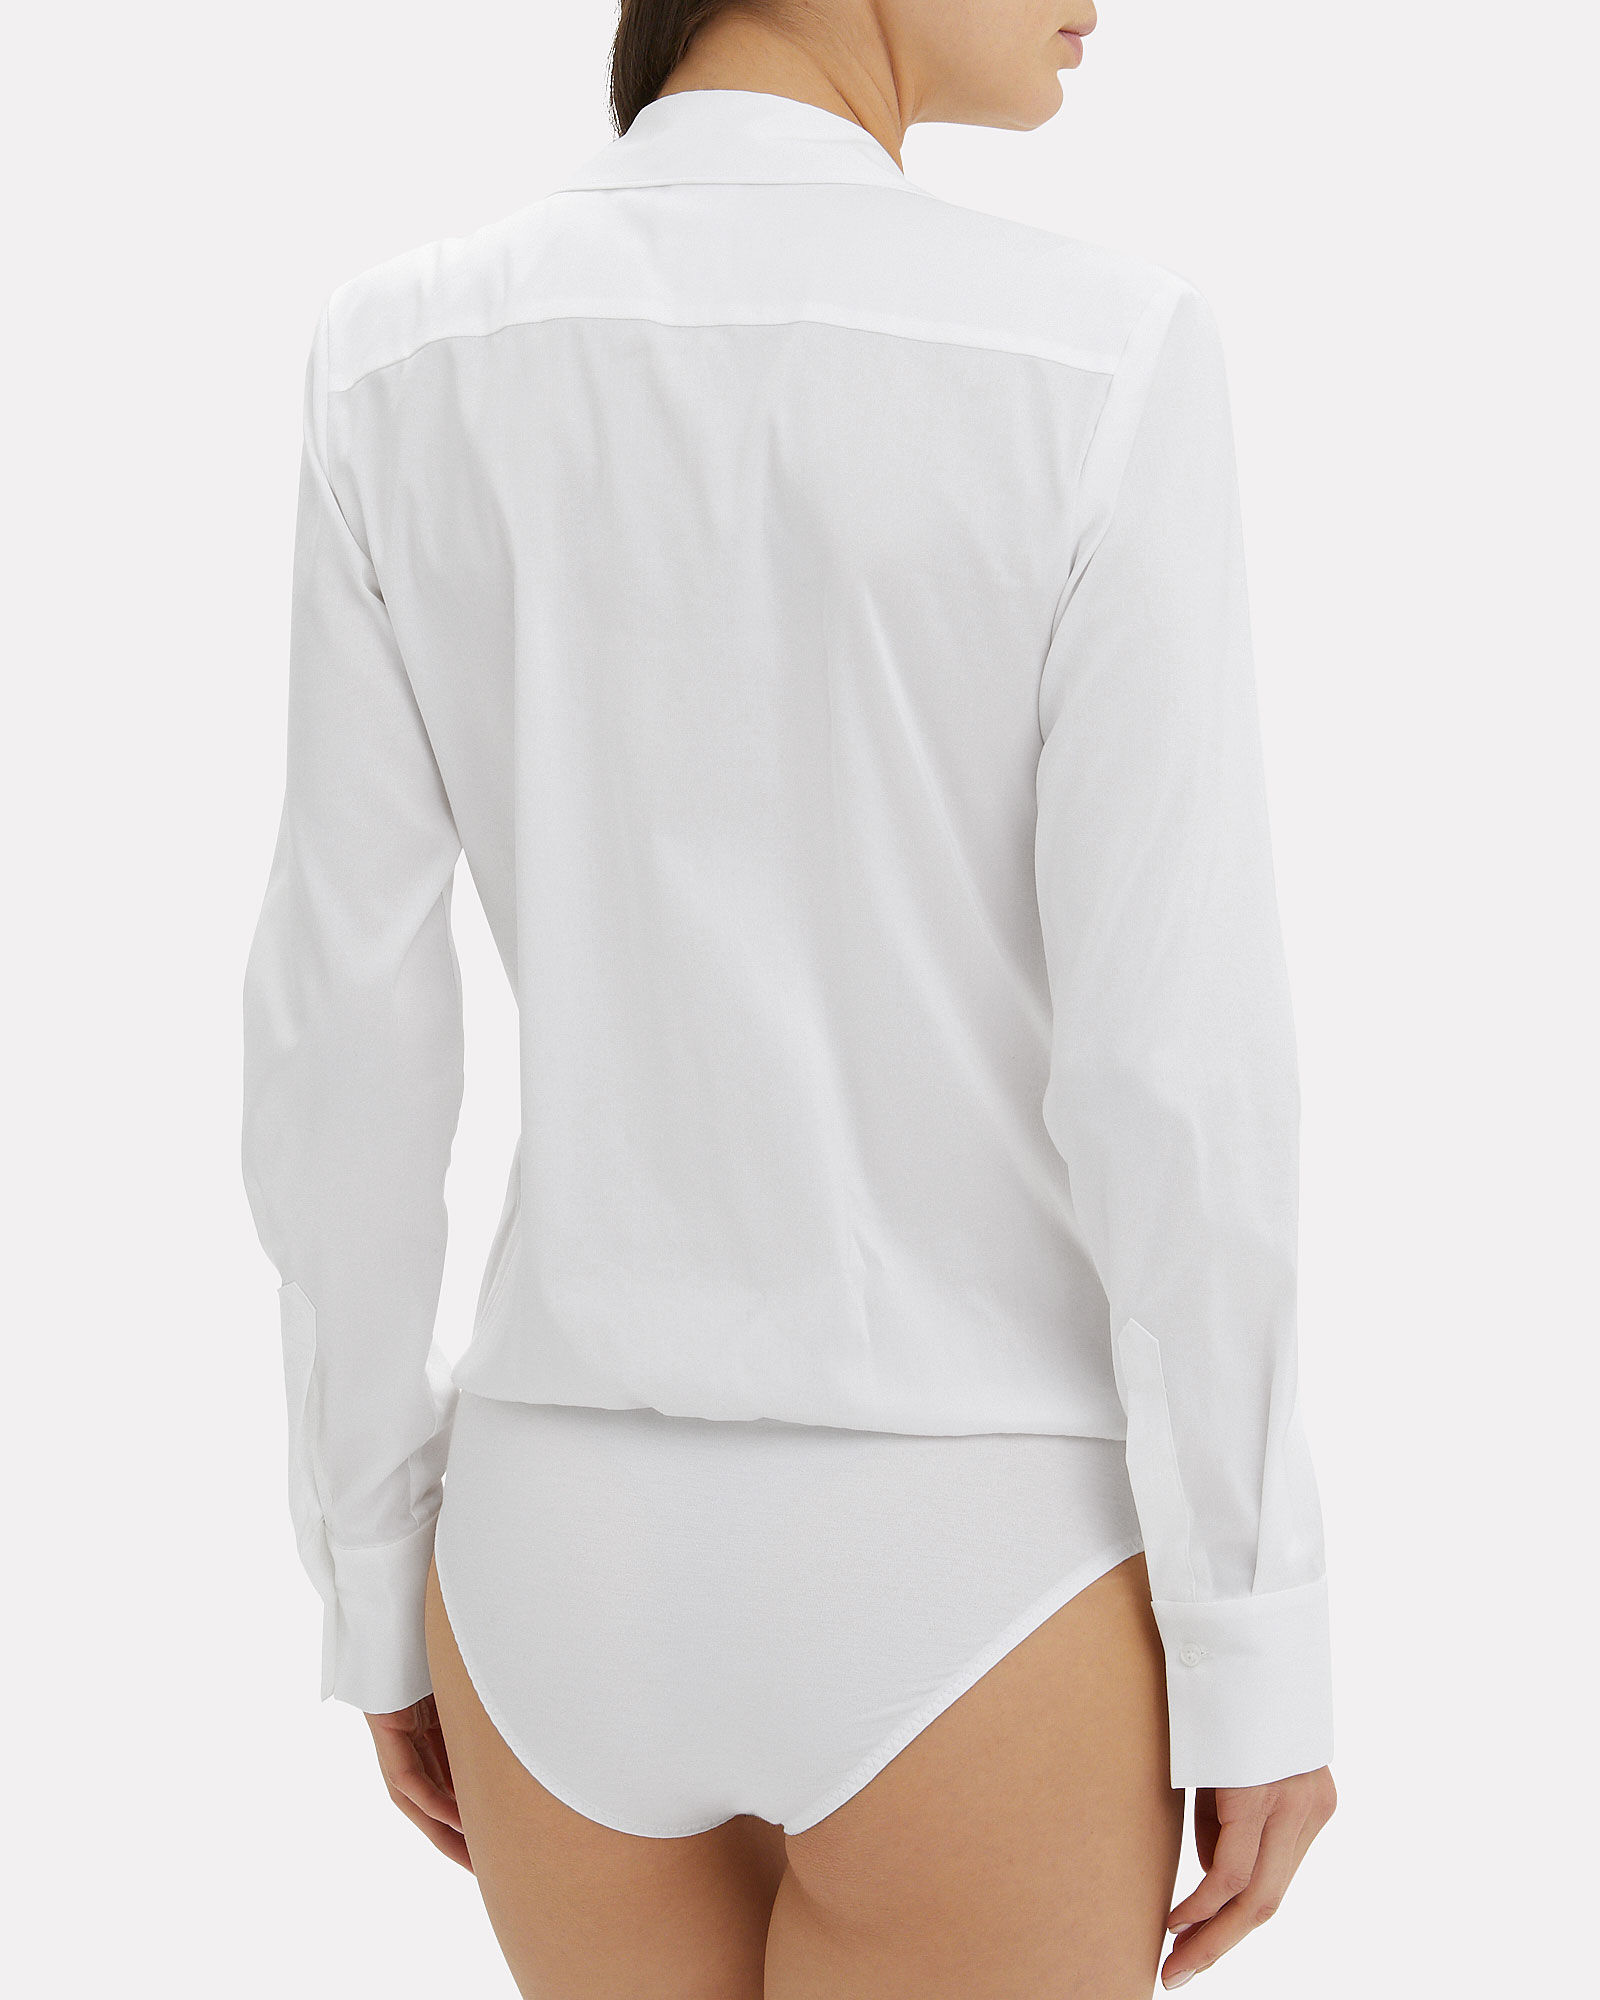 London Bodysuit, WHITE, hi-res